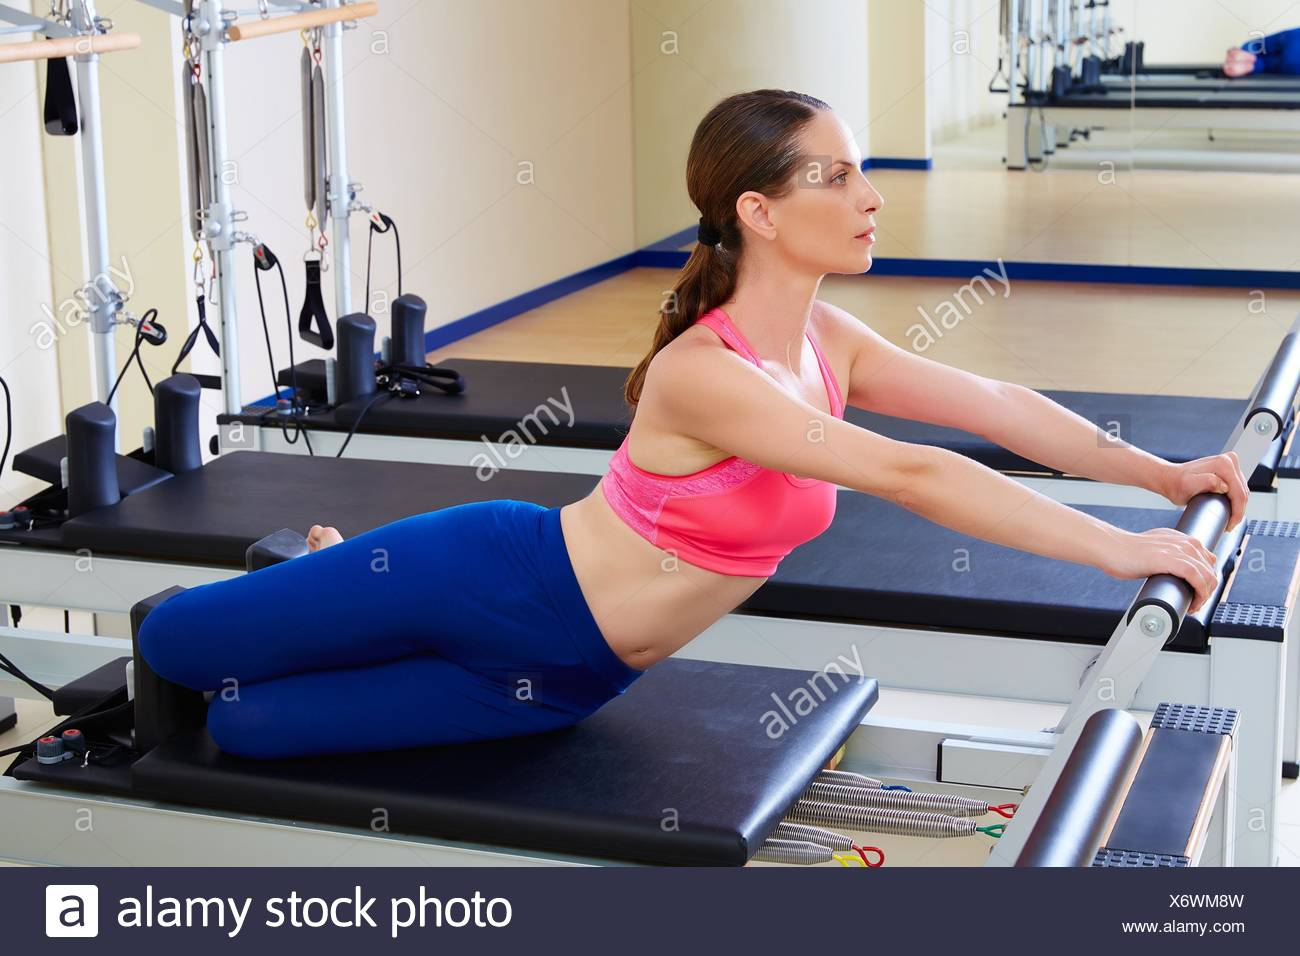 Pilates reformer woman mermaid exercise workout at gym. - Stock Image